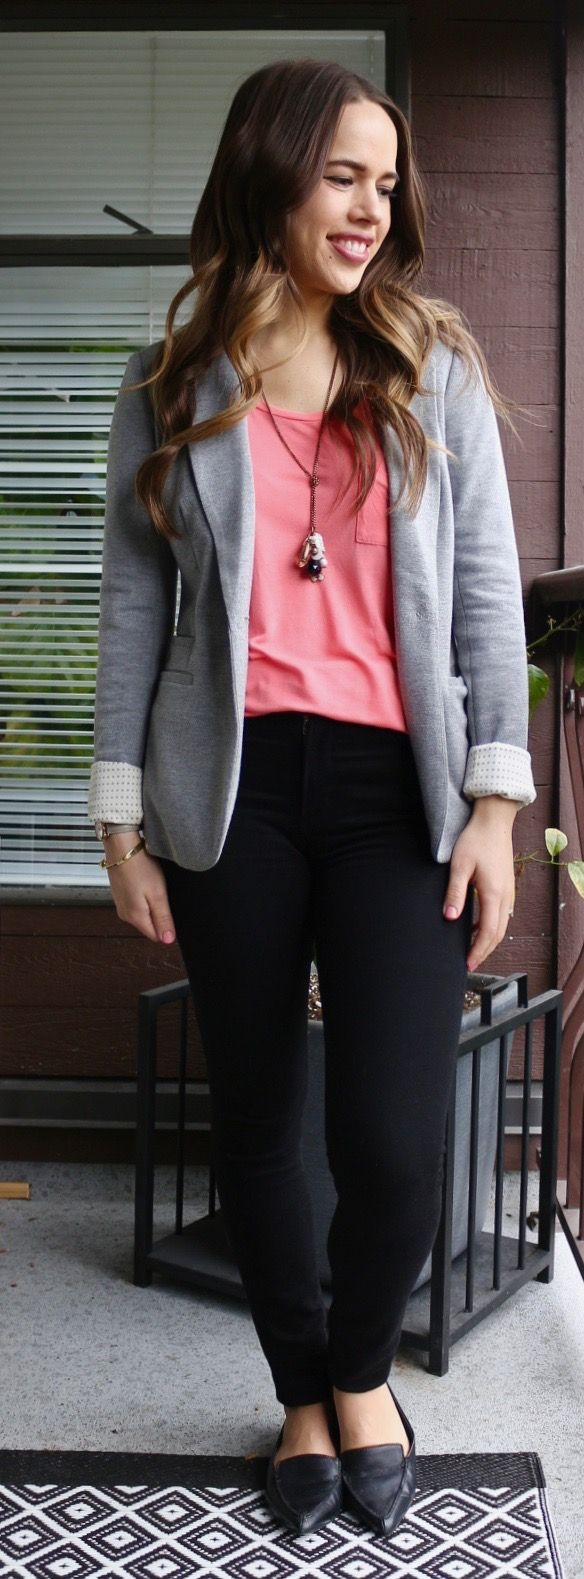 Jules in Flats - Grey Blazer and Black Jeans